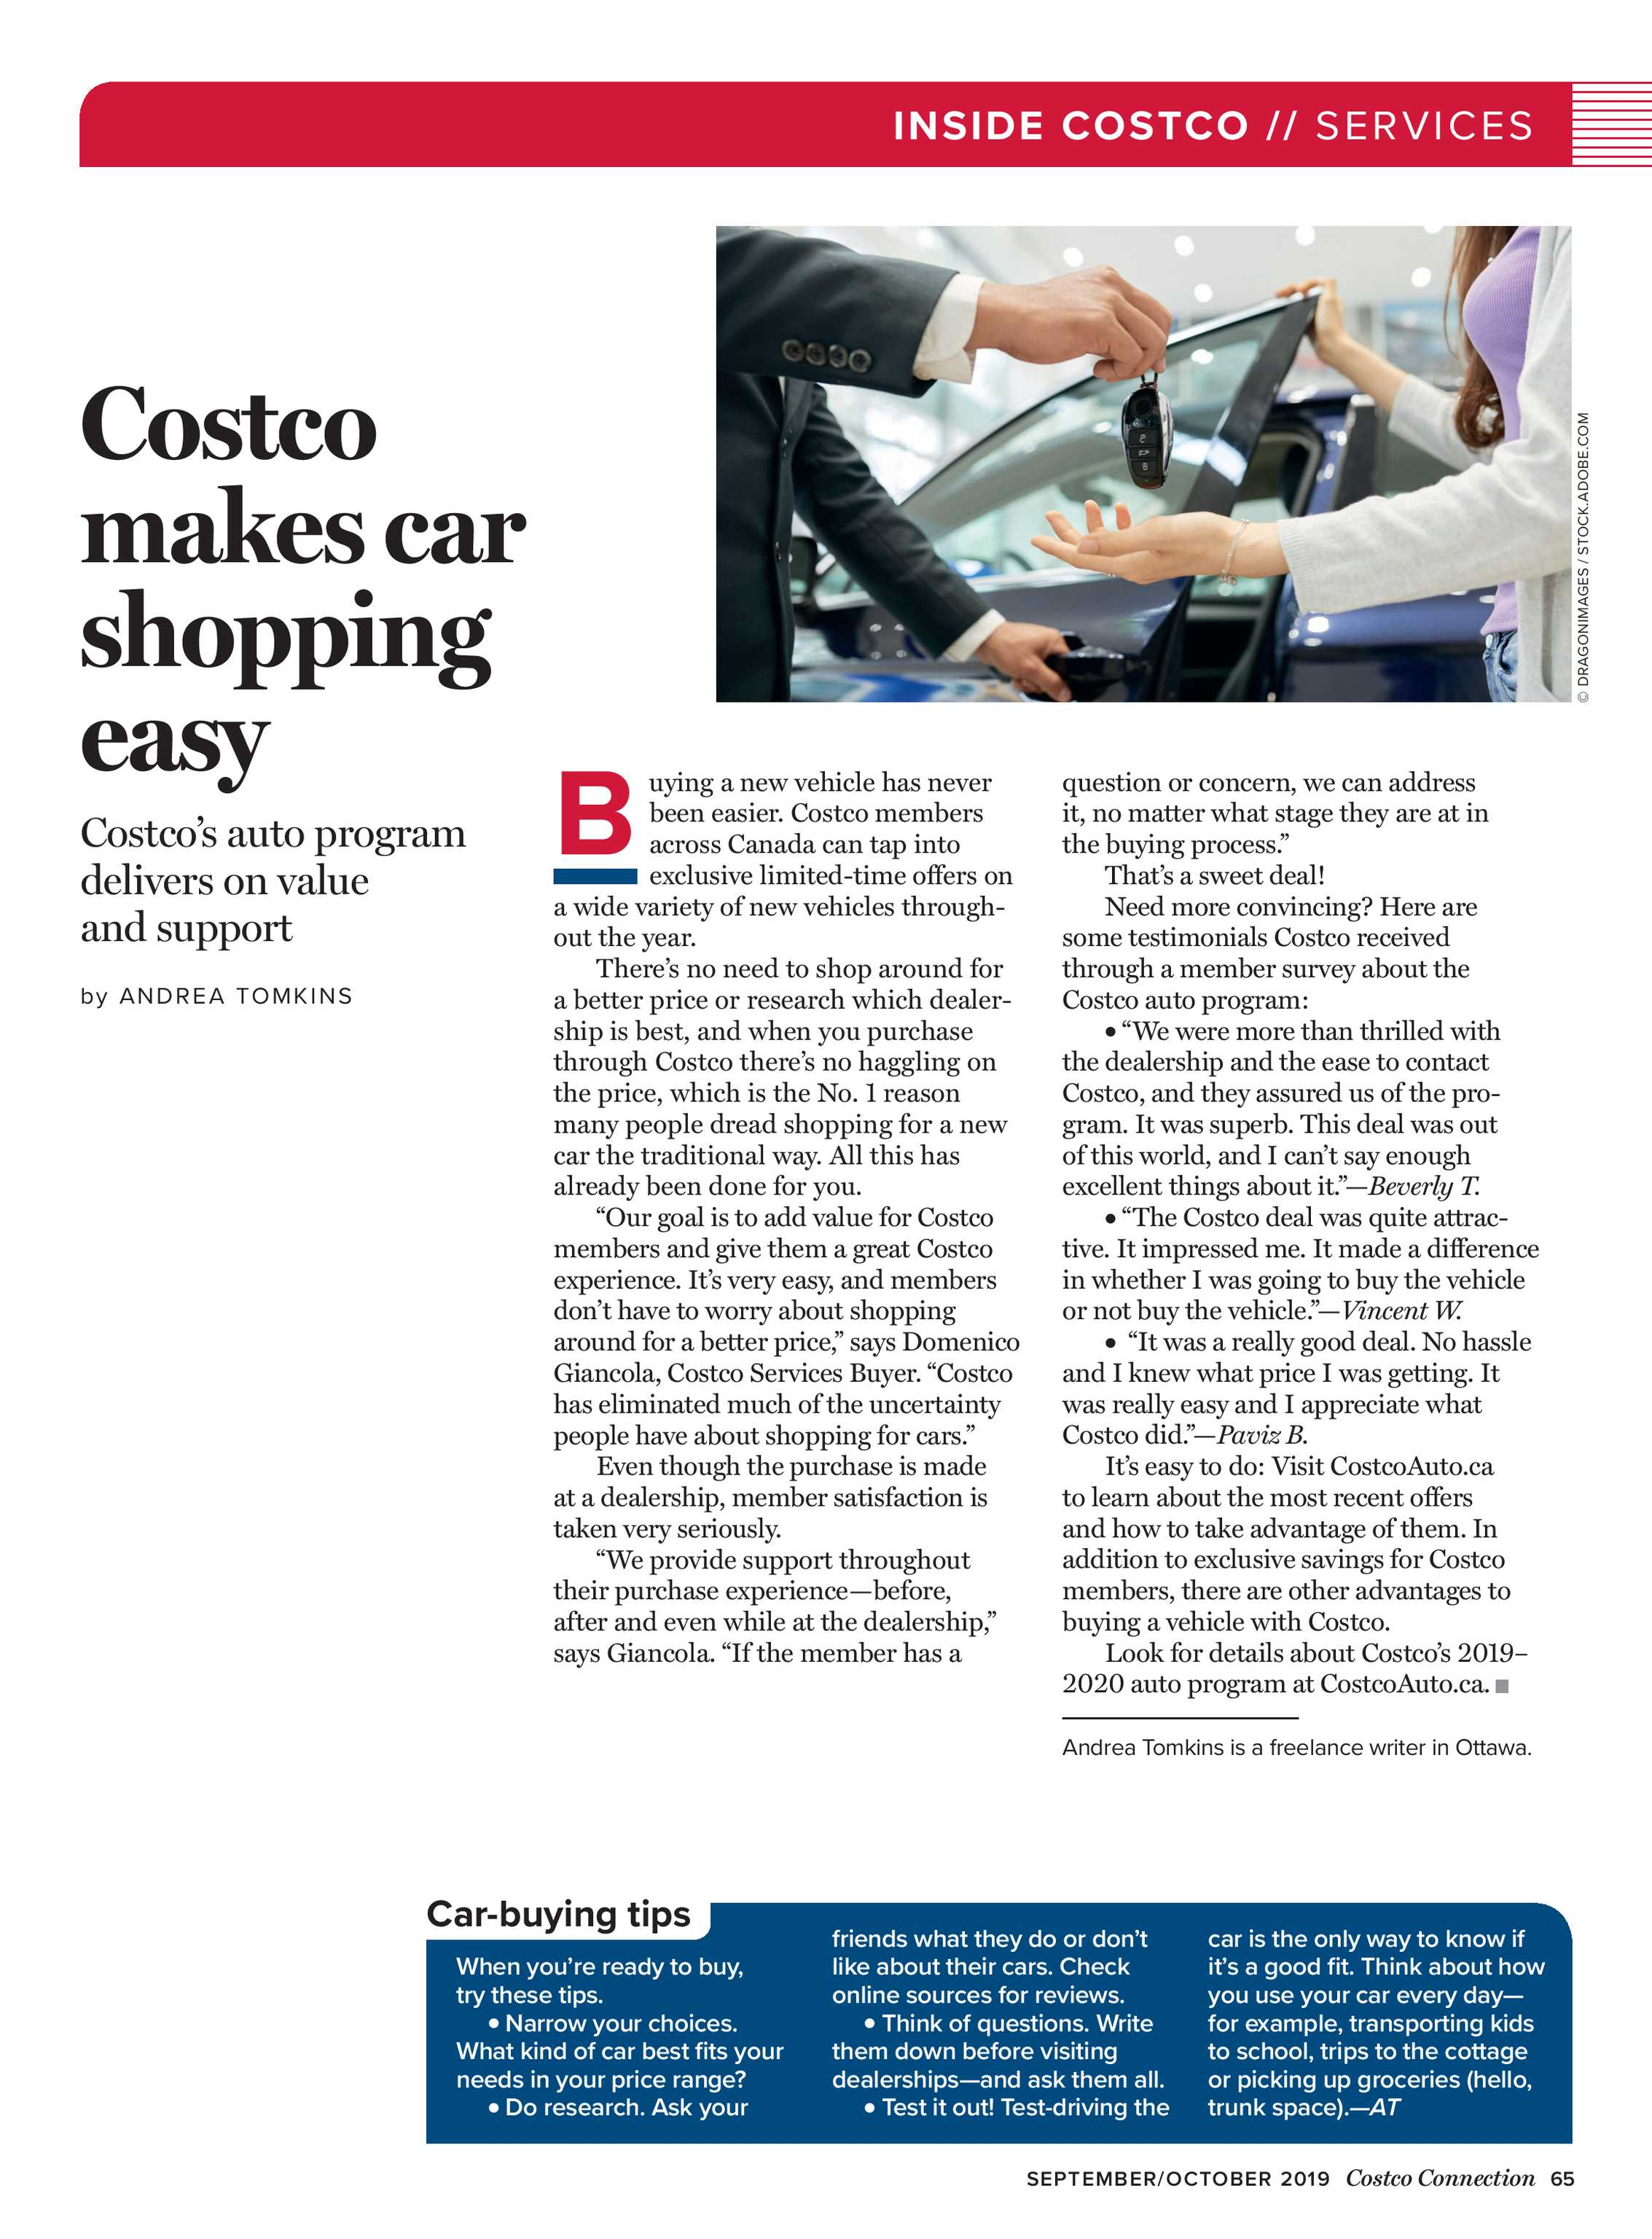 Costco Connection - September/October 2019 - page 66